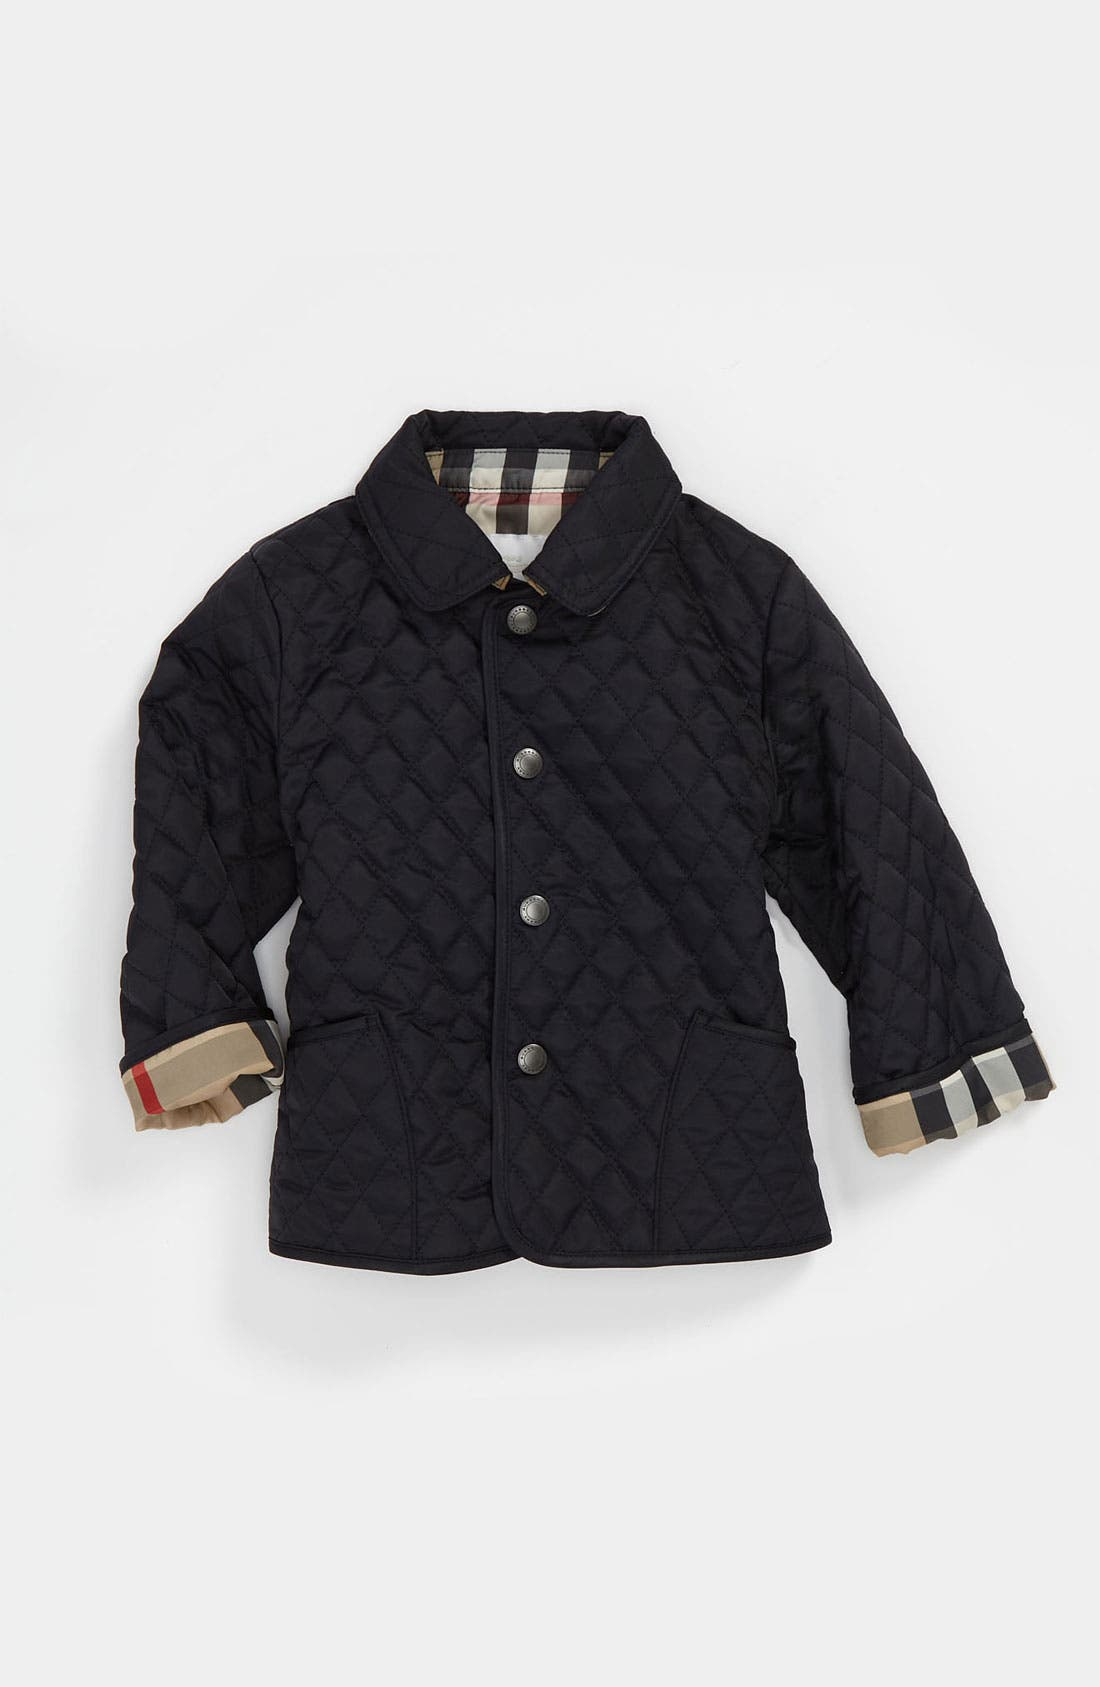 Alternate Image 1 Selected - Burberry Quilted Jacket (Baby)